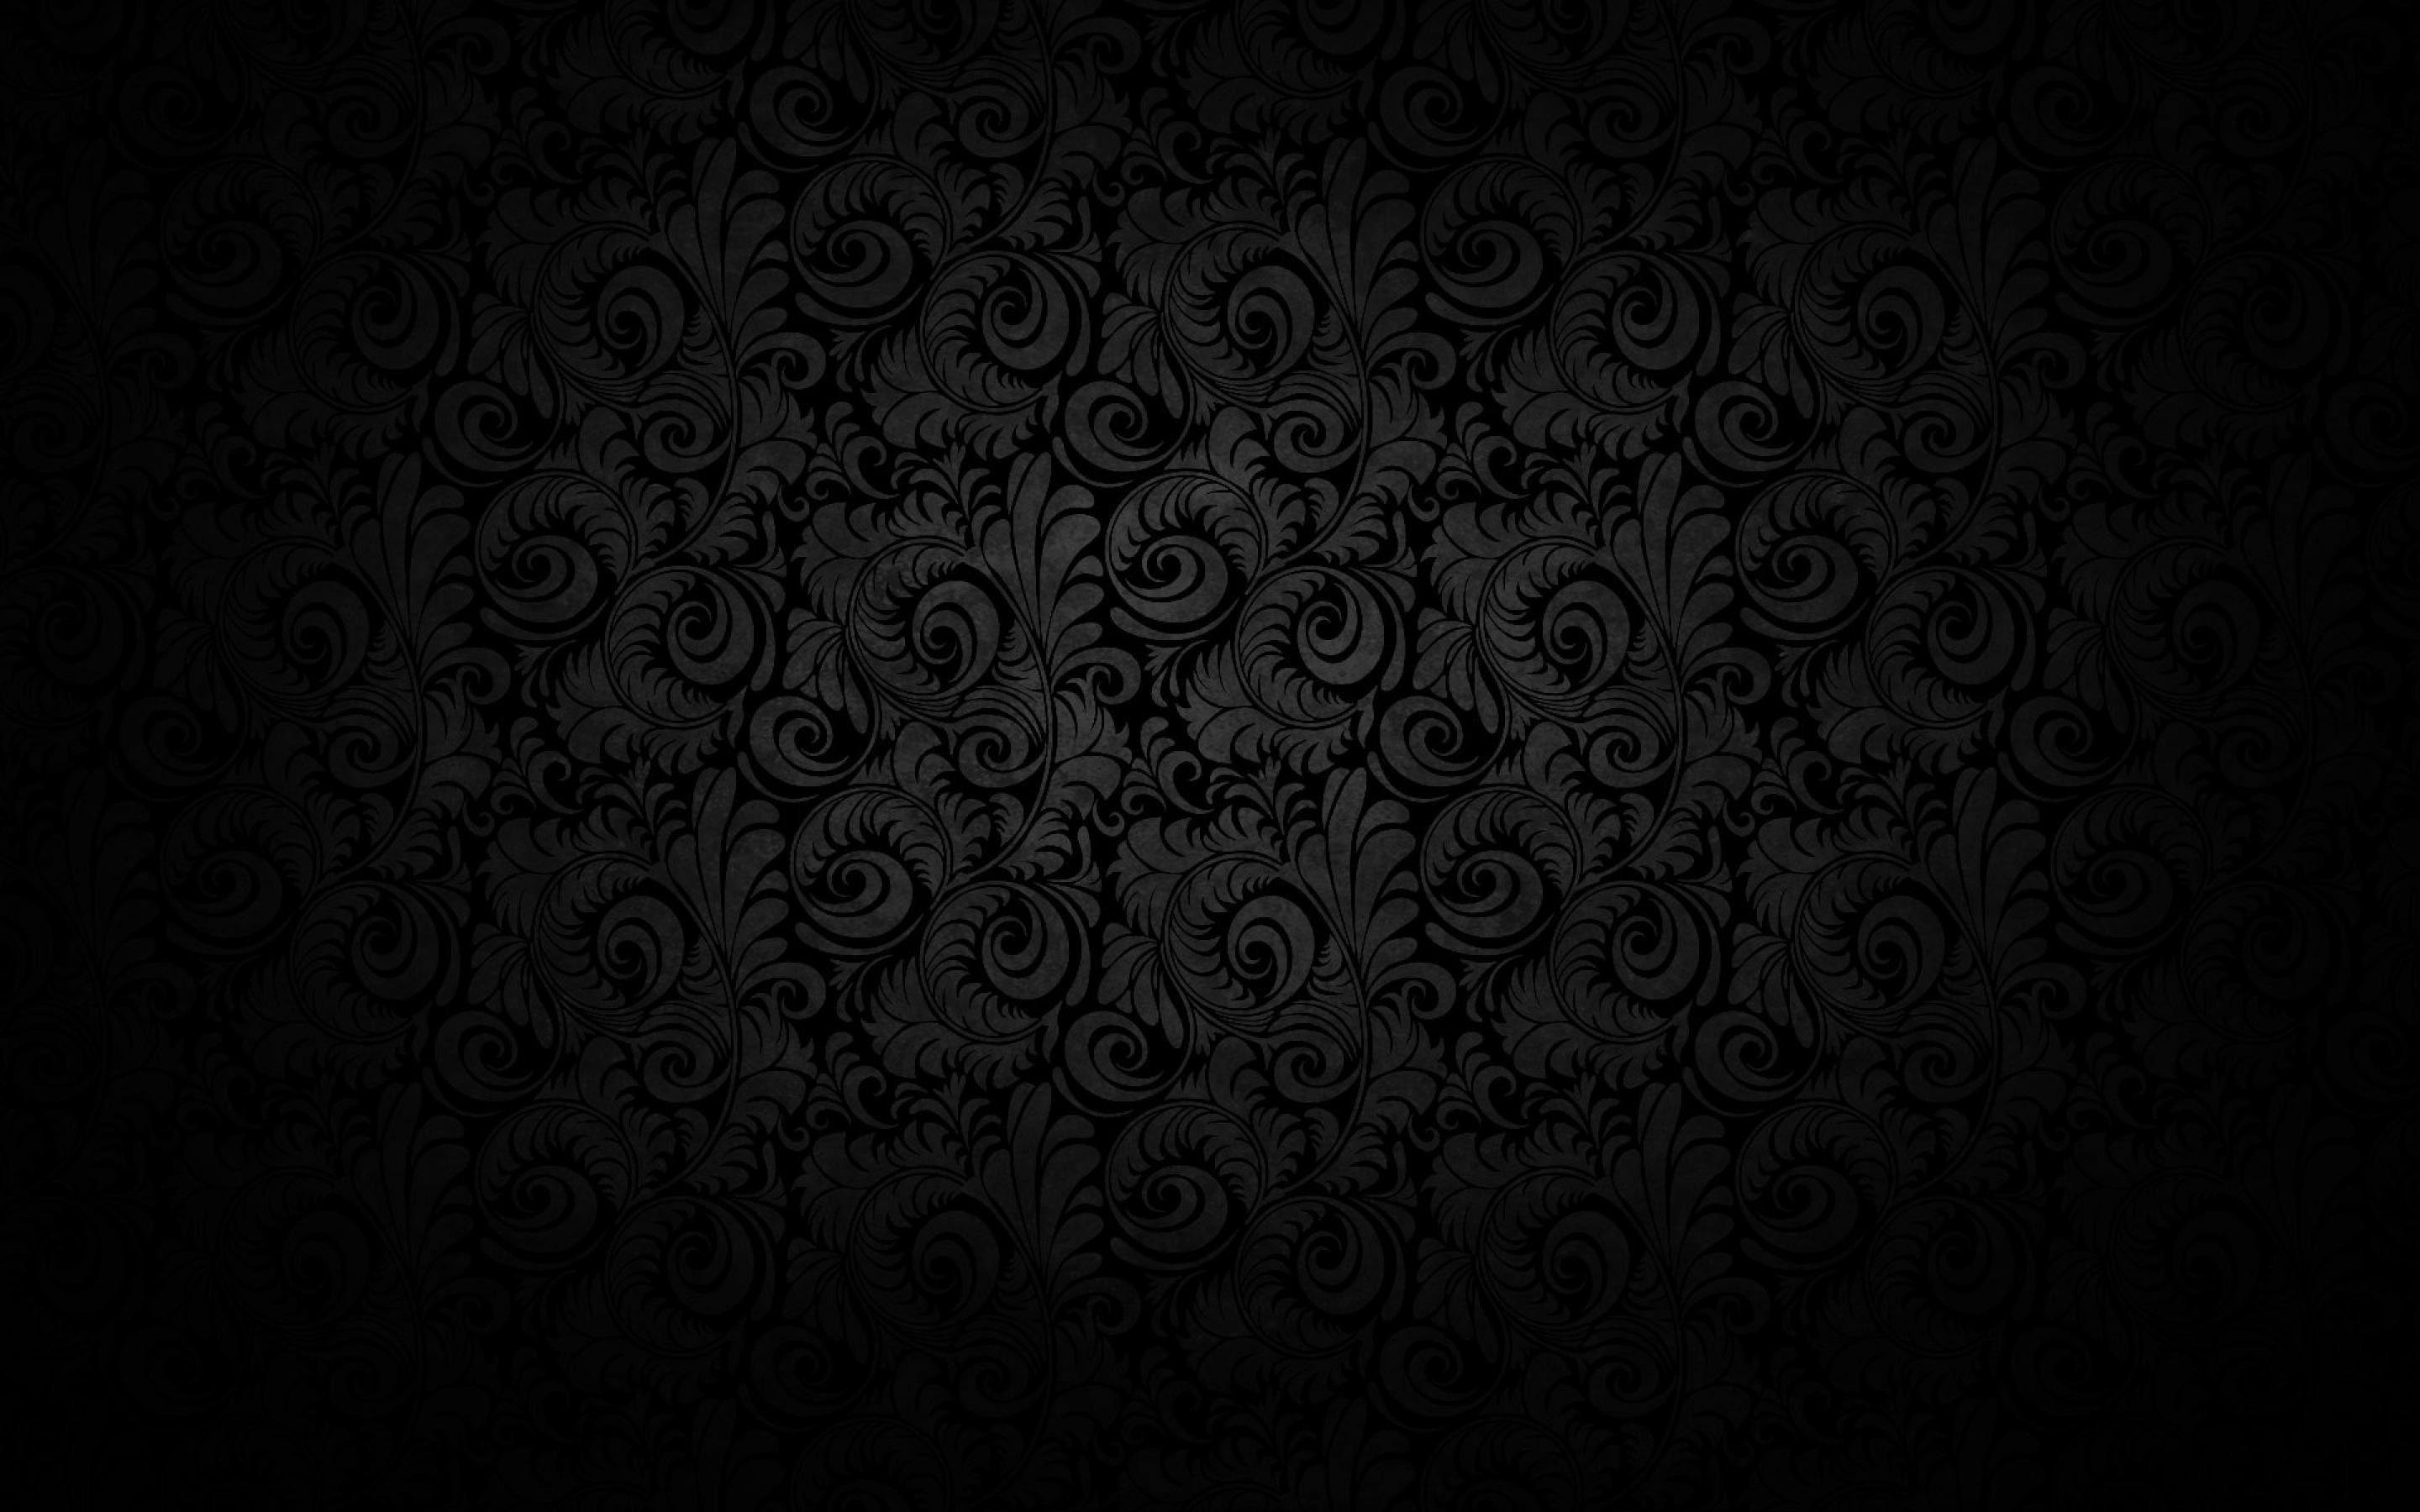 2880x1800 Vintage Navy Blue Wallpaper Background  px 329.03 KB  AbstractWhite. Victorian. Damask.